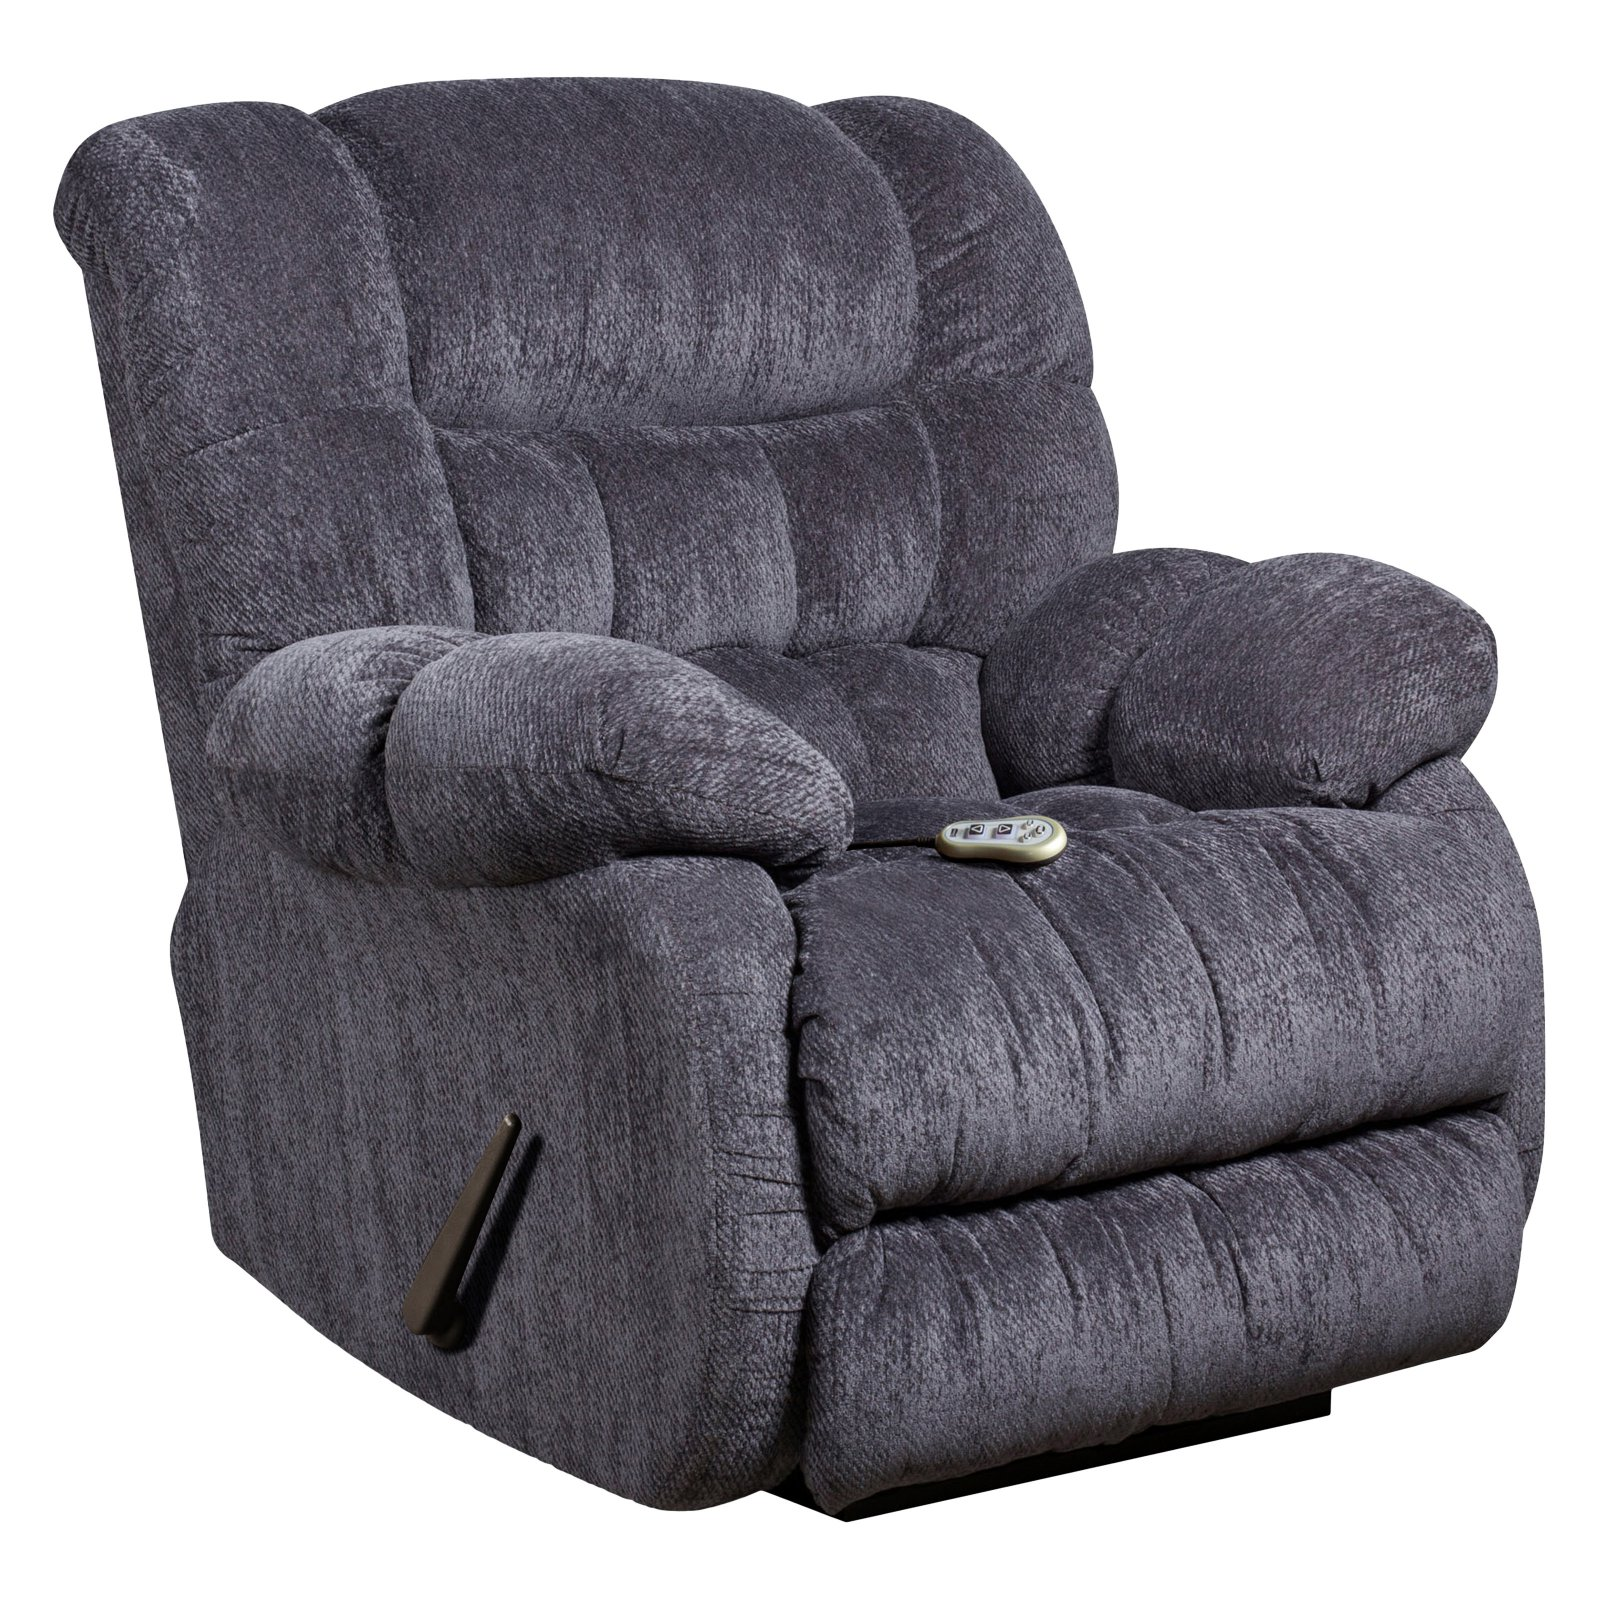 Flash Furniture Massaging Columbia Indigo Microfiber Rocker Recliner with Heat Control, Multiple Colors